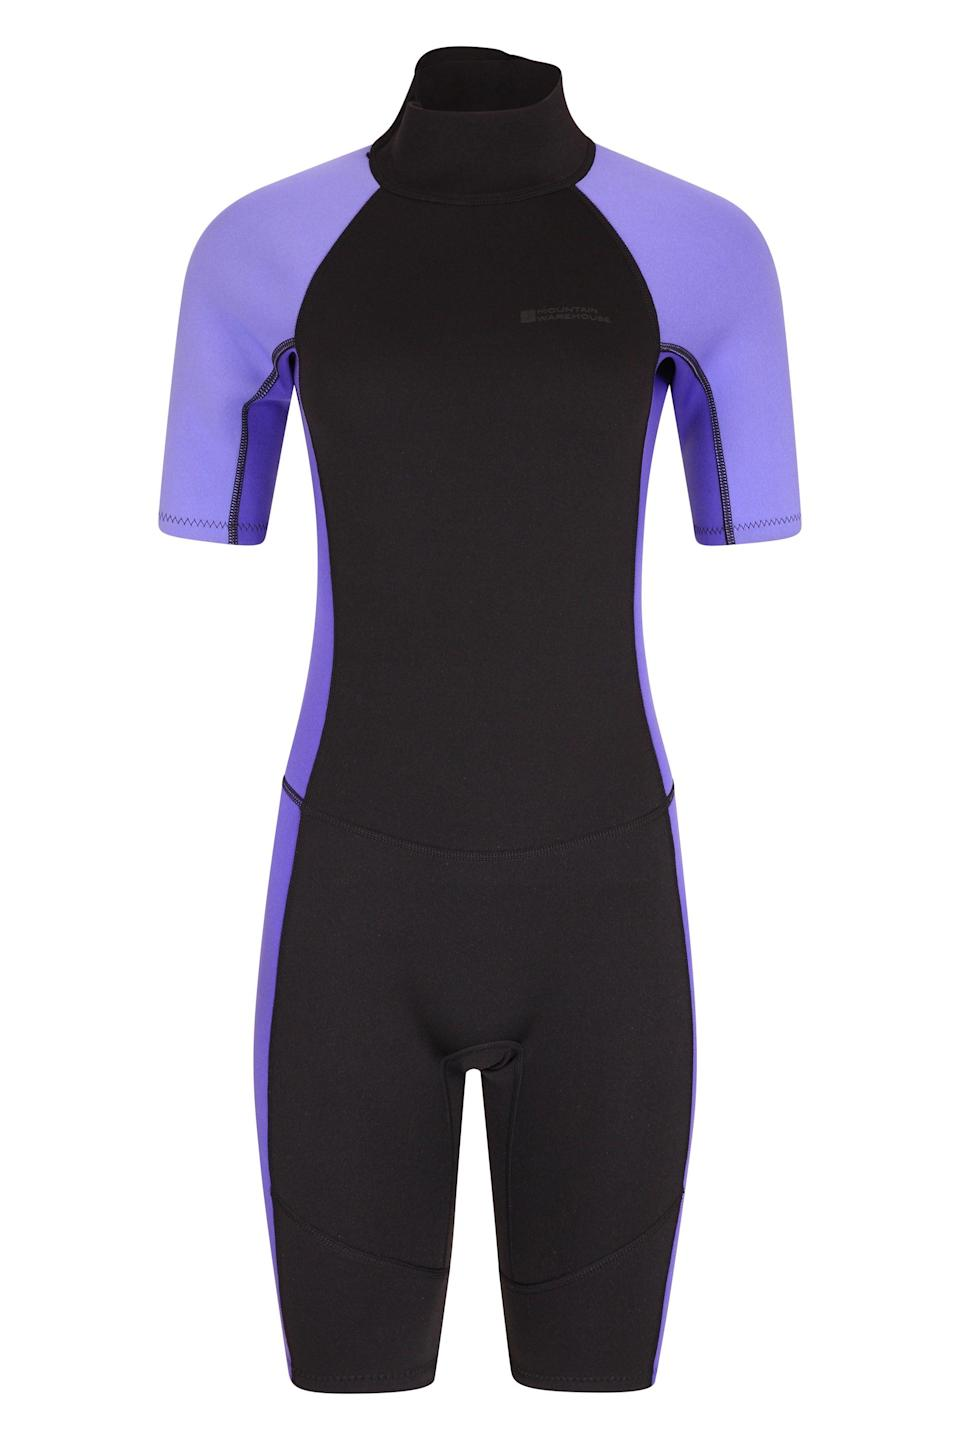 Mountain Warehouse shorty wetsuit